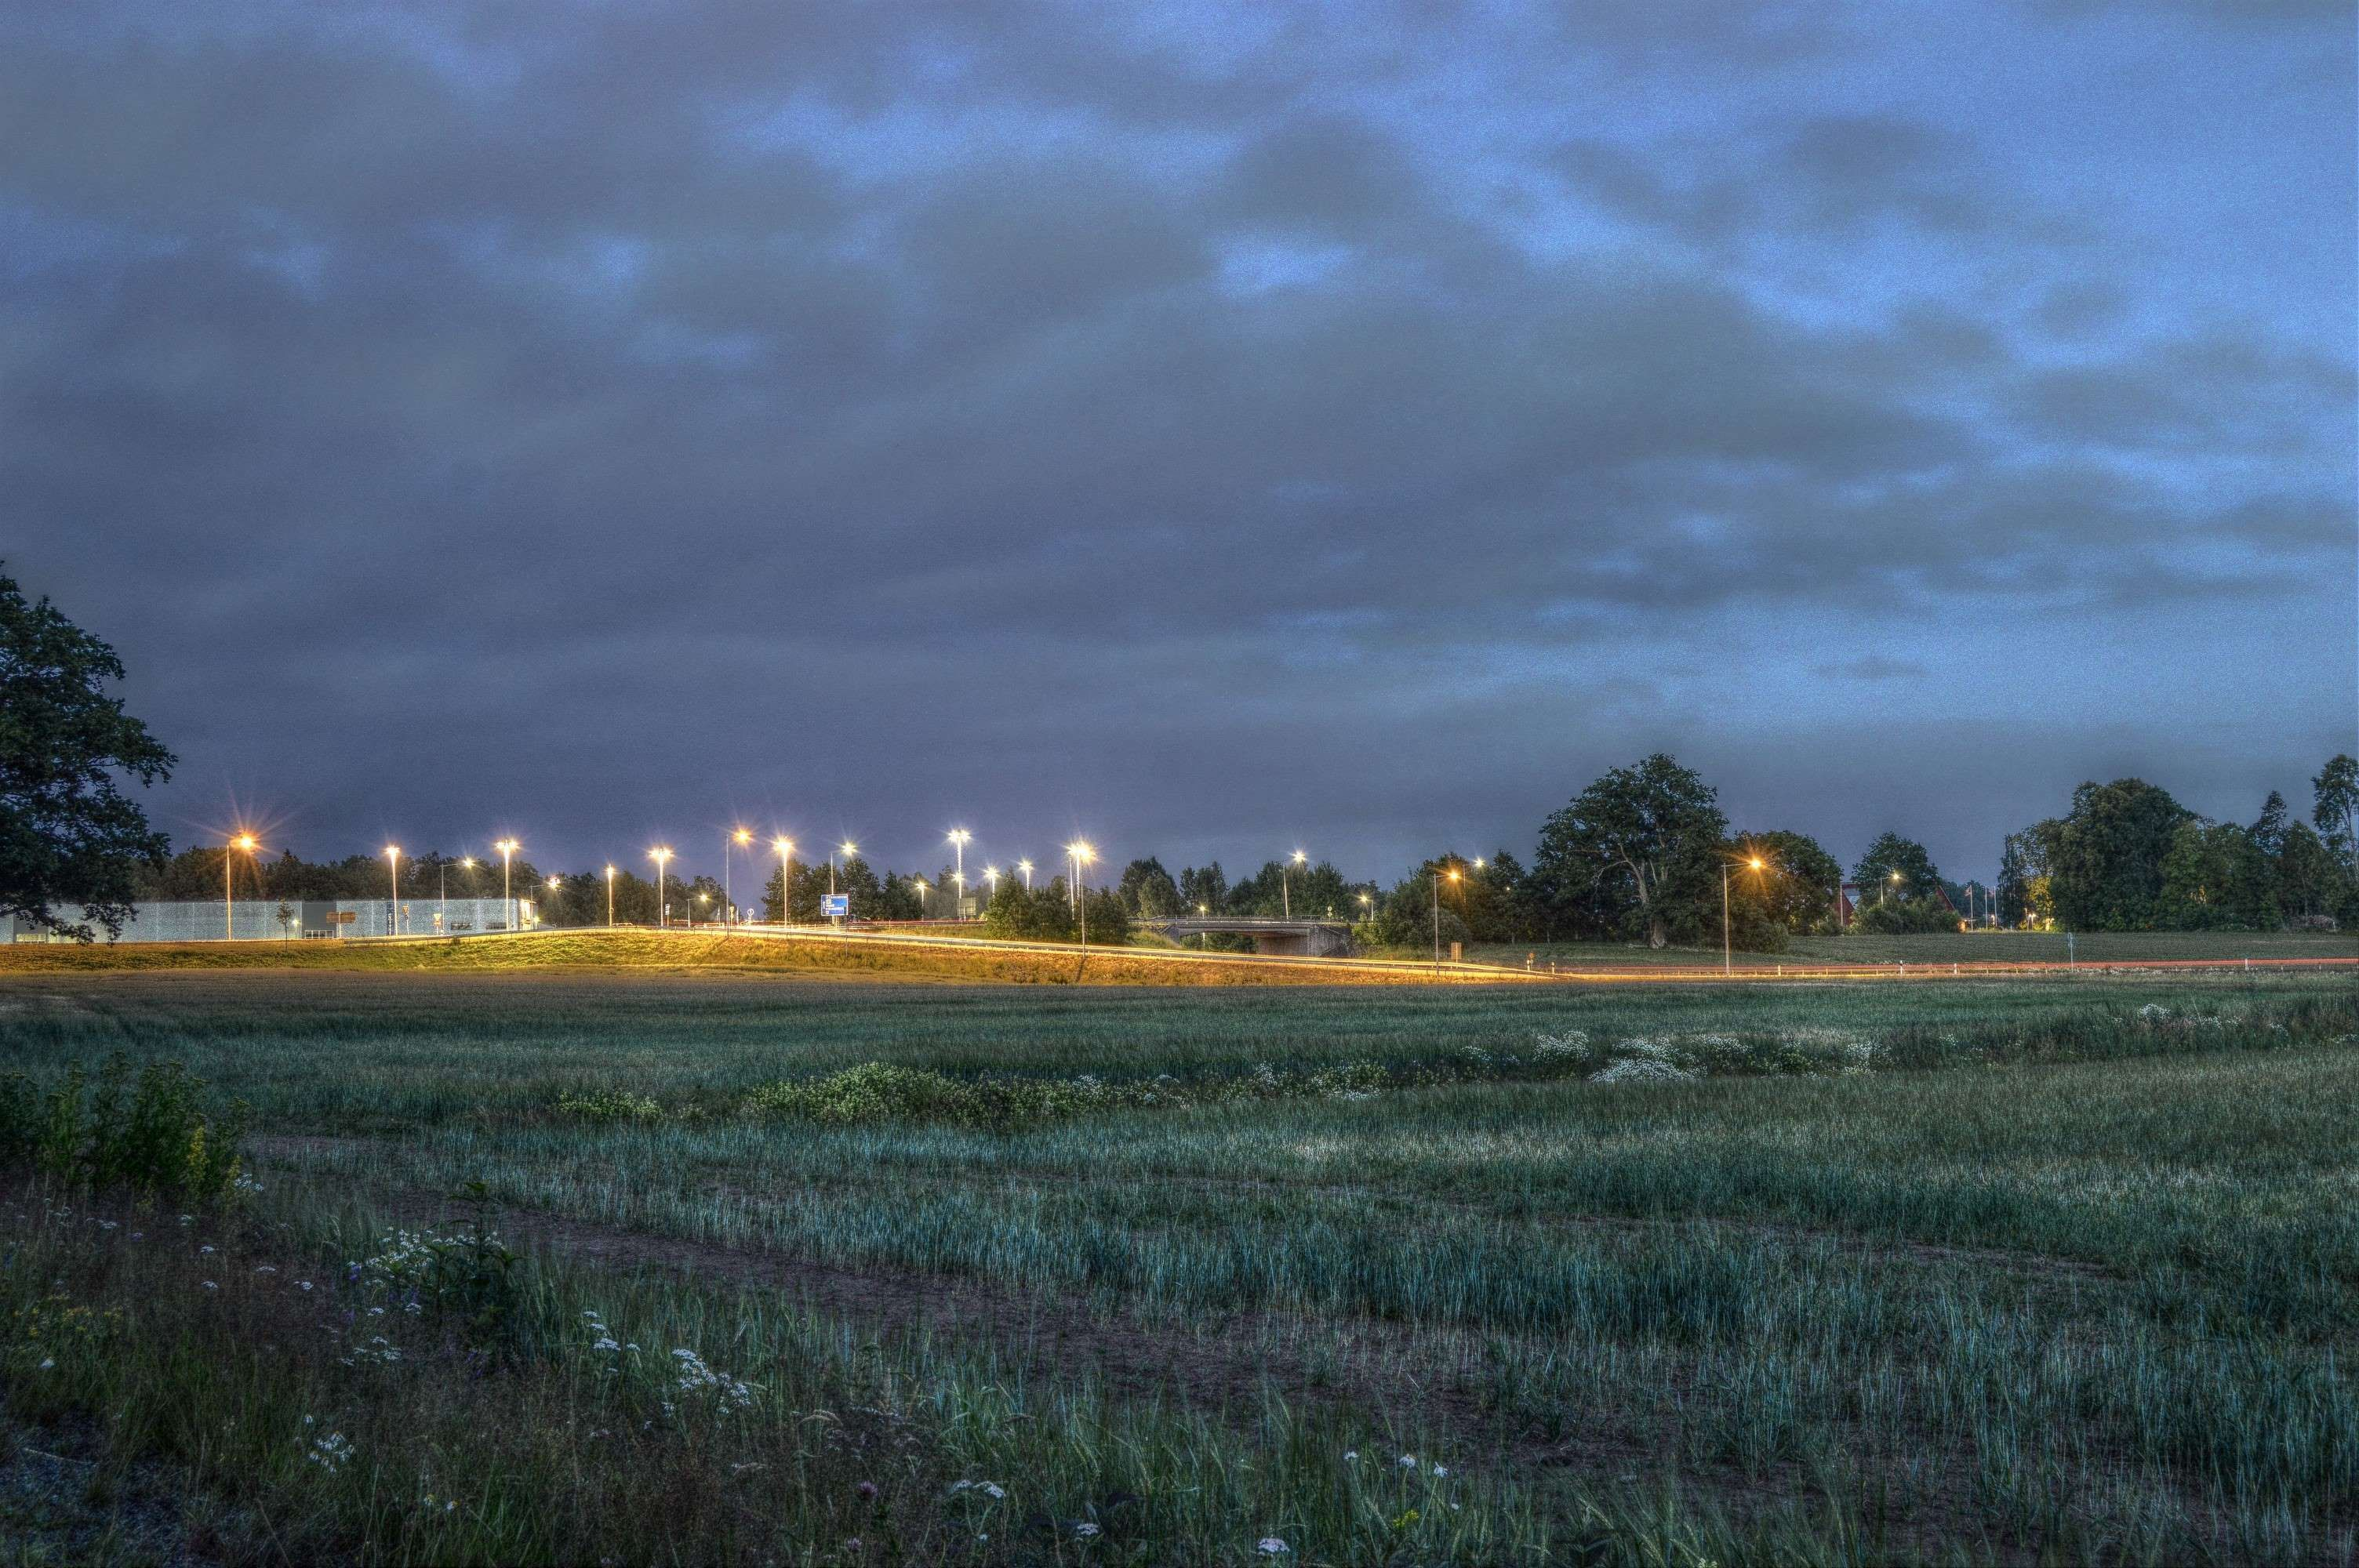 grass field at night. #evening #field #forest #grass #hdr #light #lights #nature Grass Field At Night